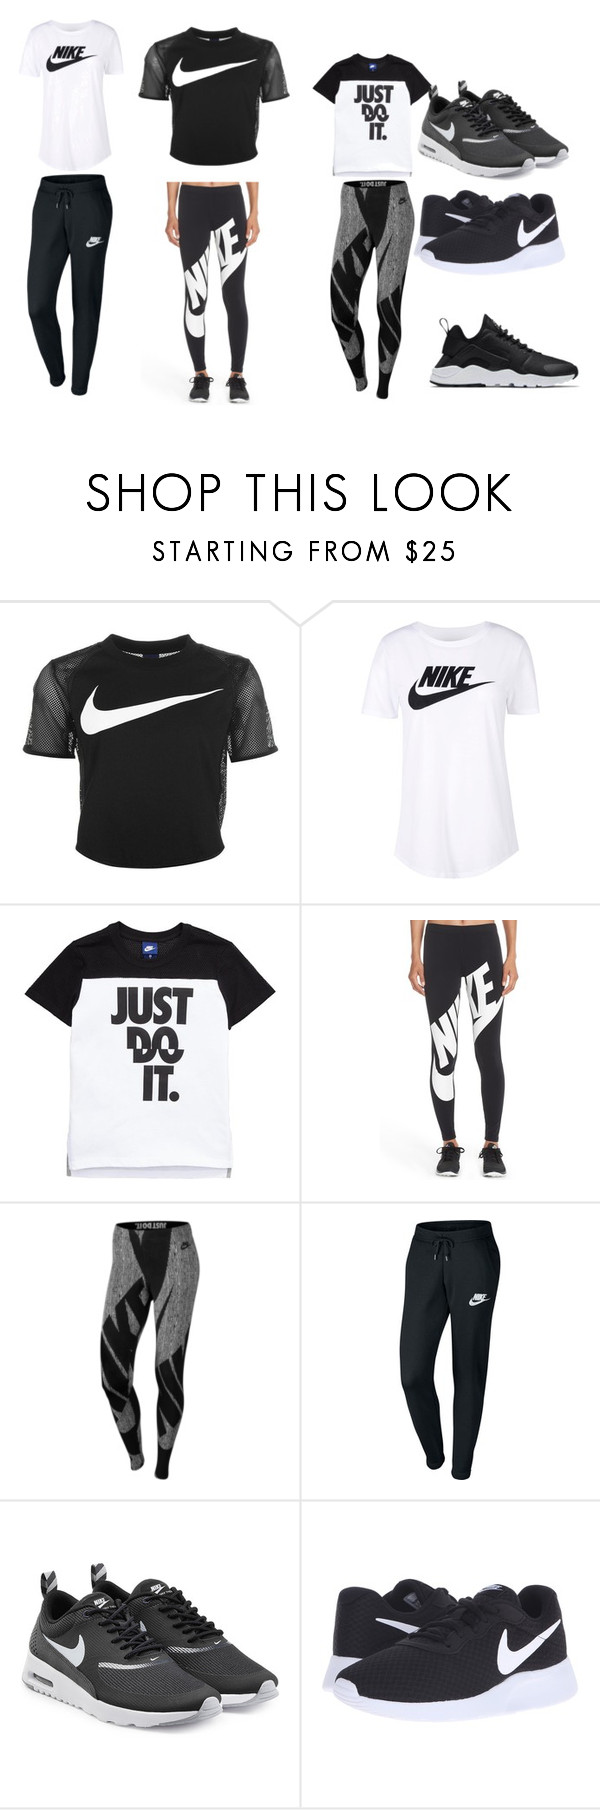 """like it 😈"" by alyssagrimaldocollins1984 ❤ liked on Polyvore featuring NIKE and likeit"